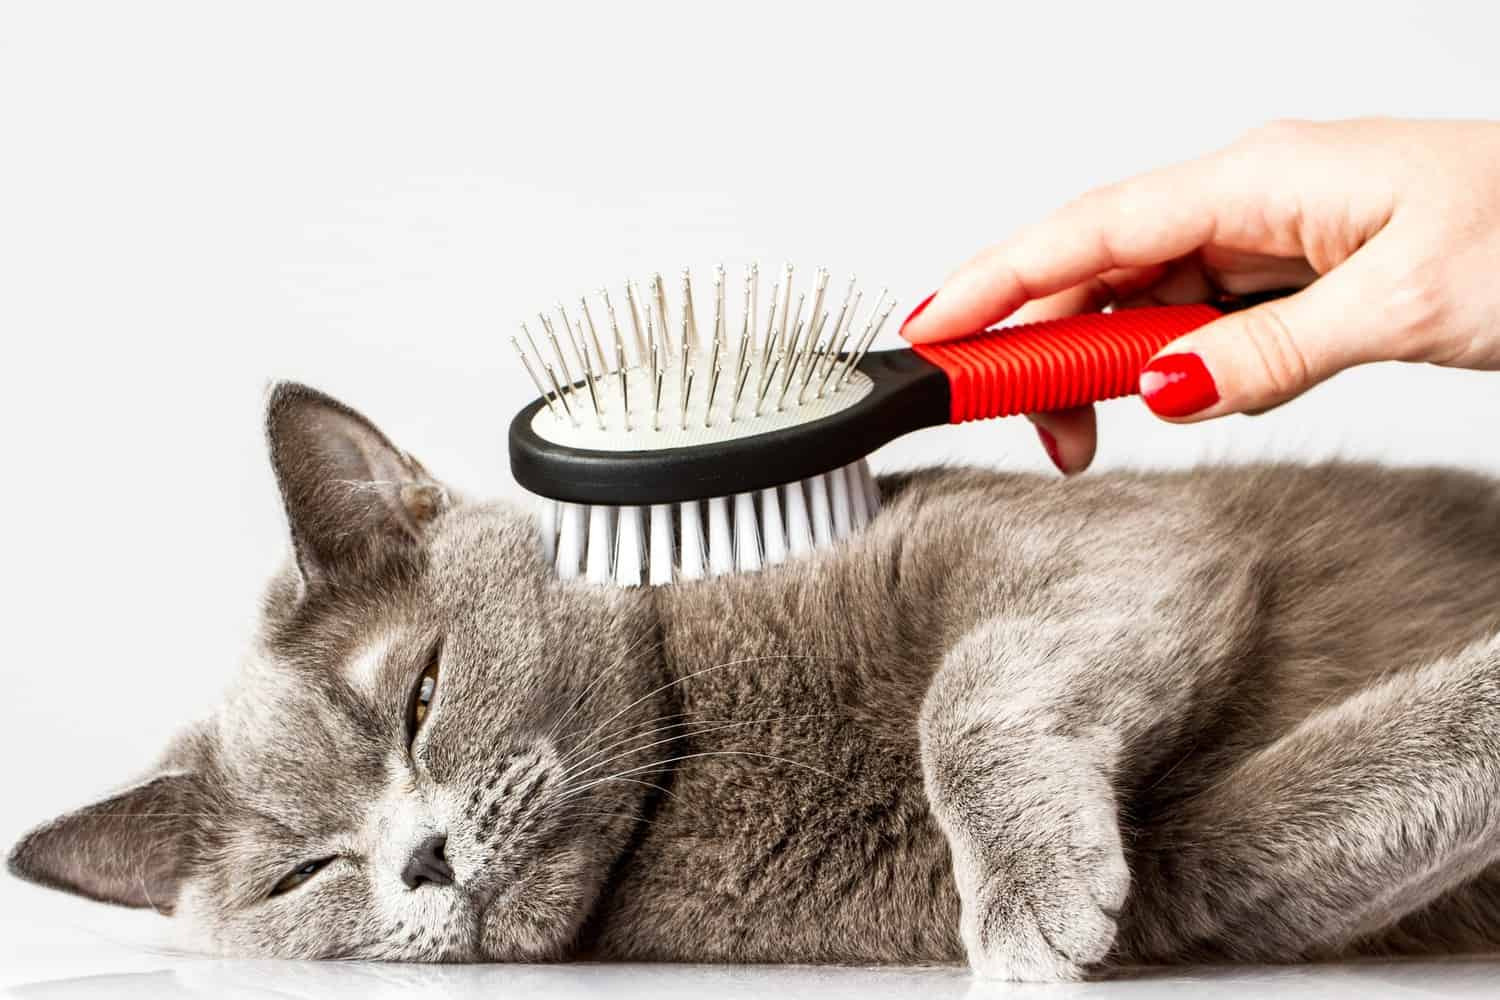 A brush used on a cat.